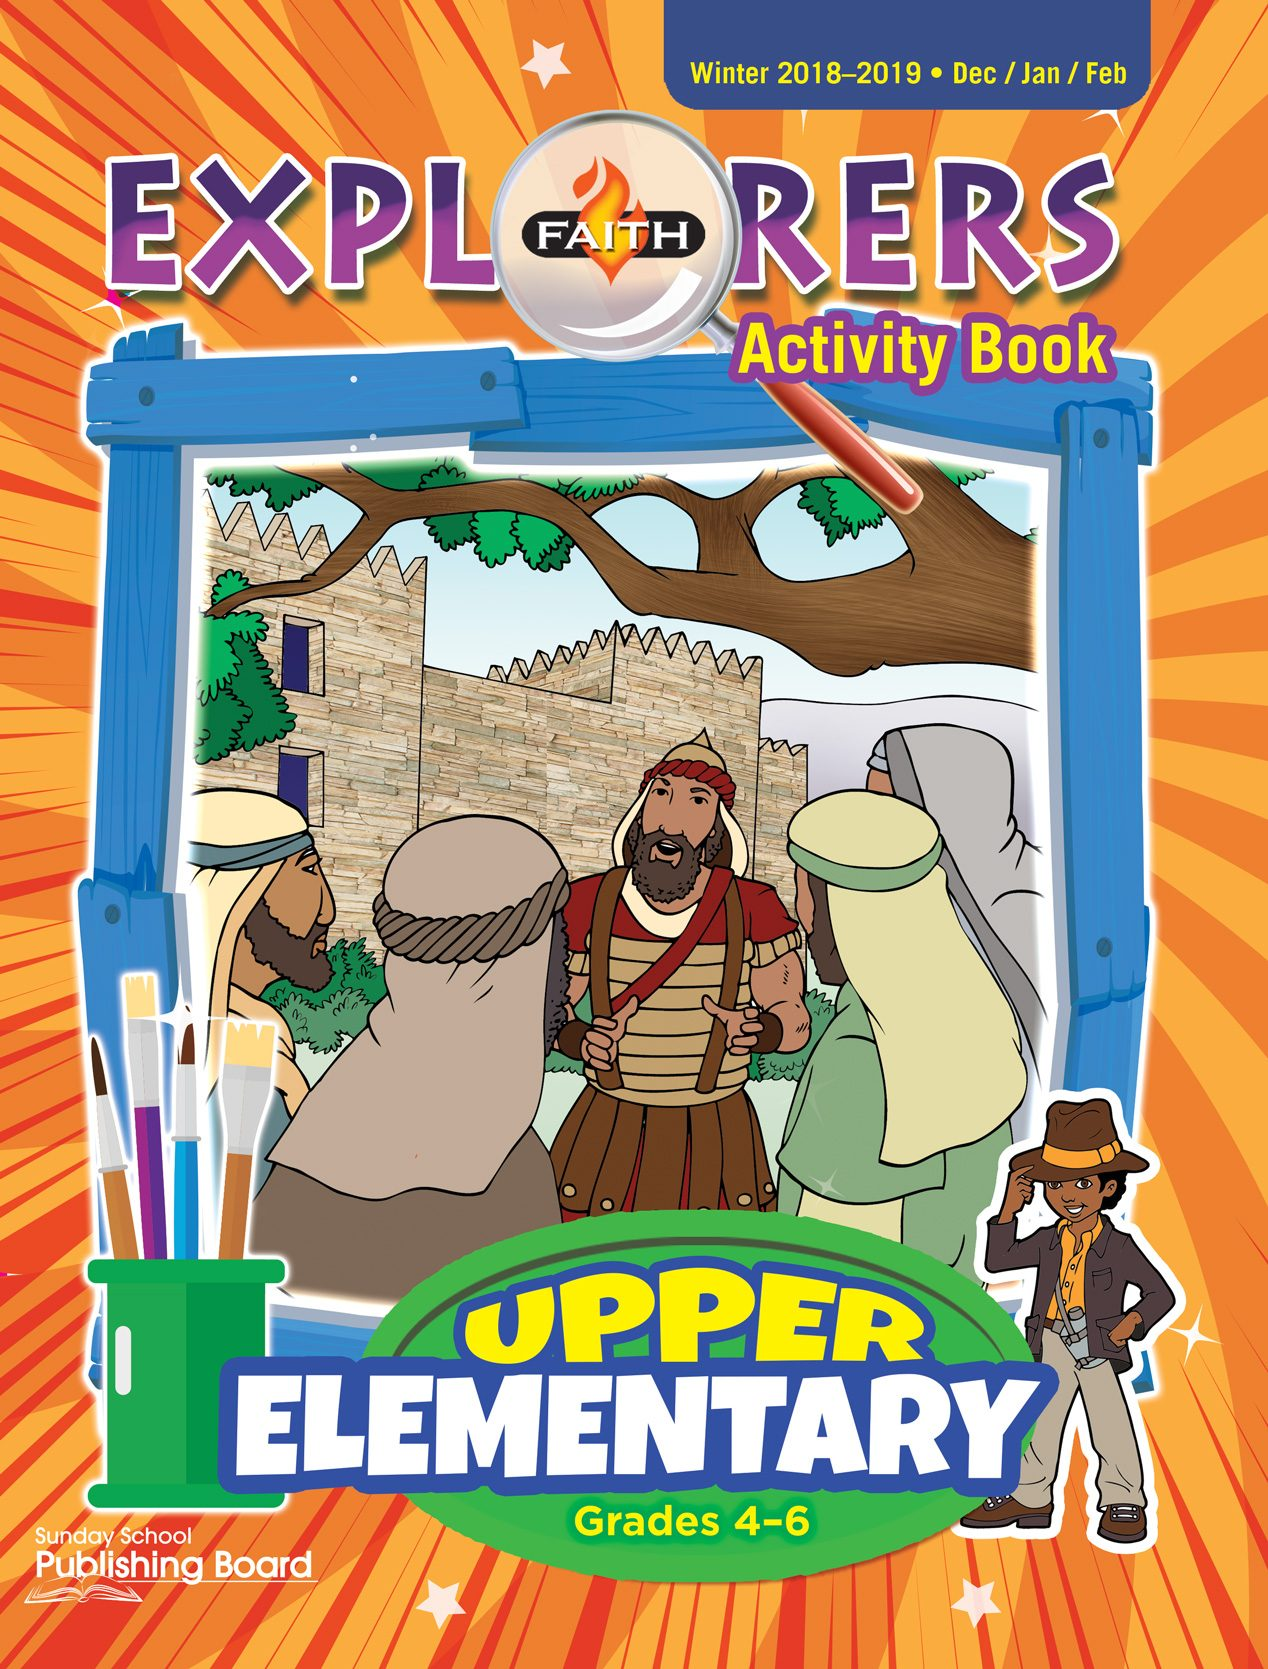 Faith Explorers Activity Book, Upper Elementary for Grades 4-6 (Winter 2018)-Digital Edition